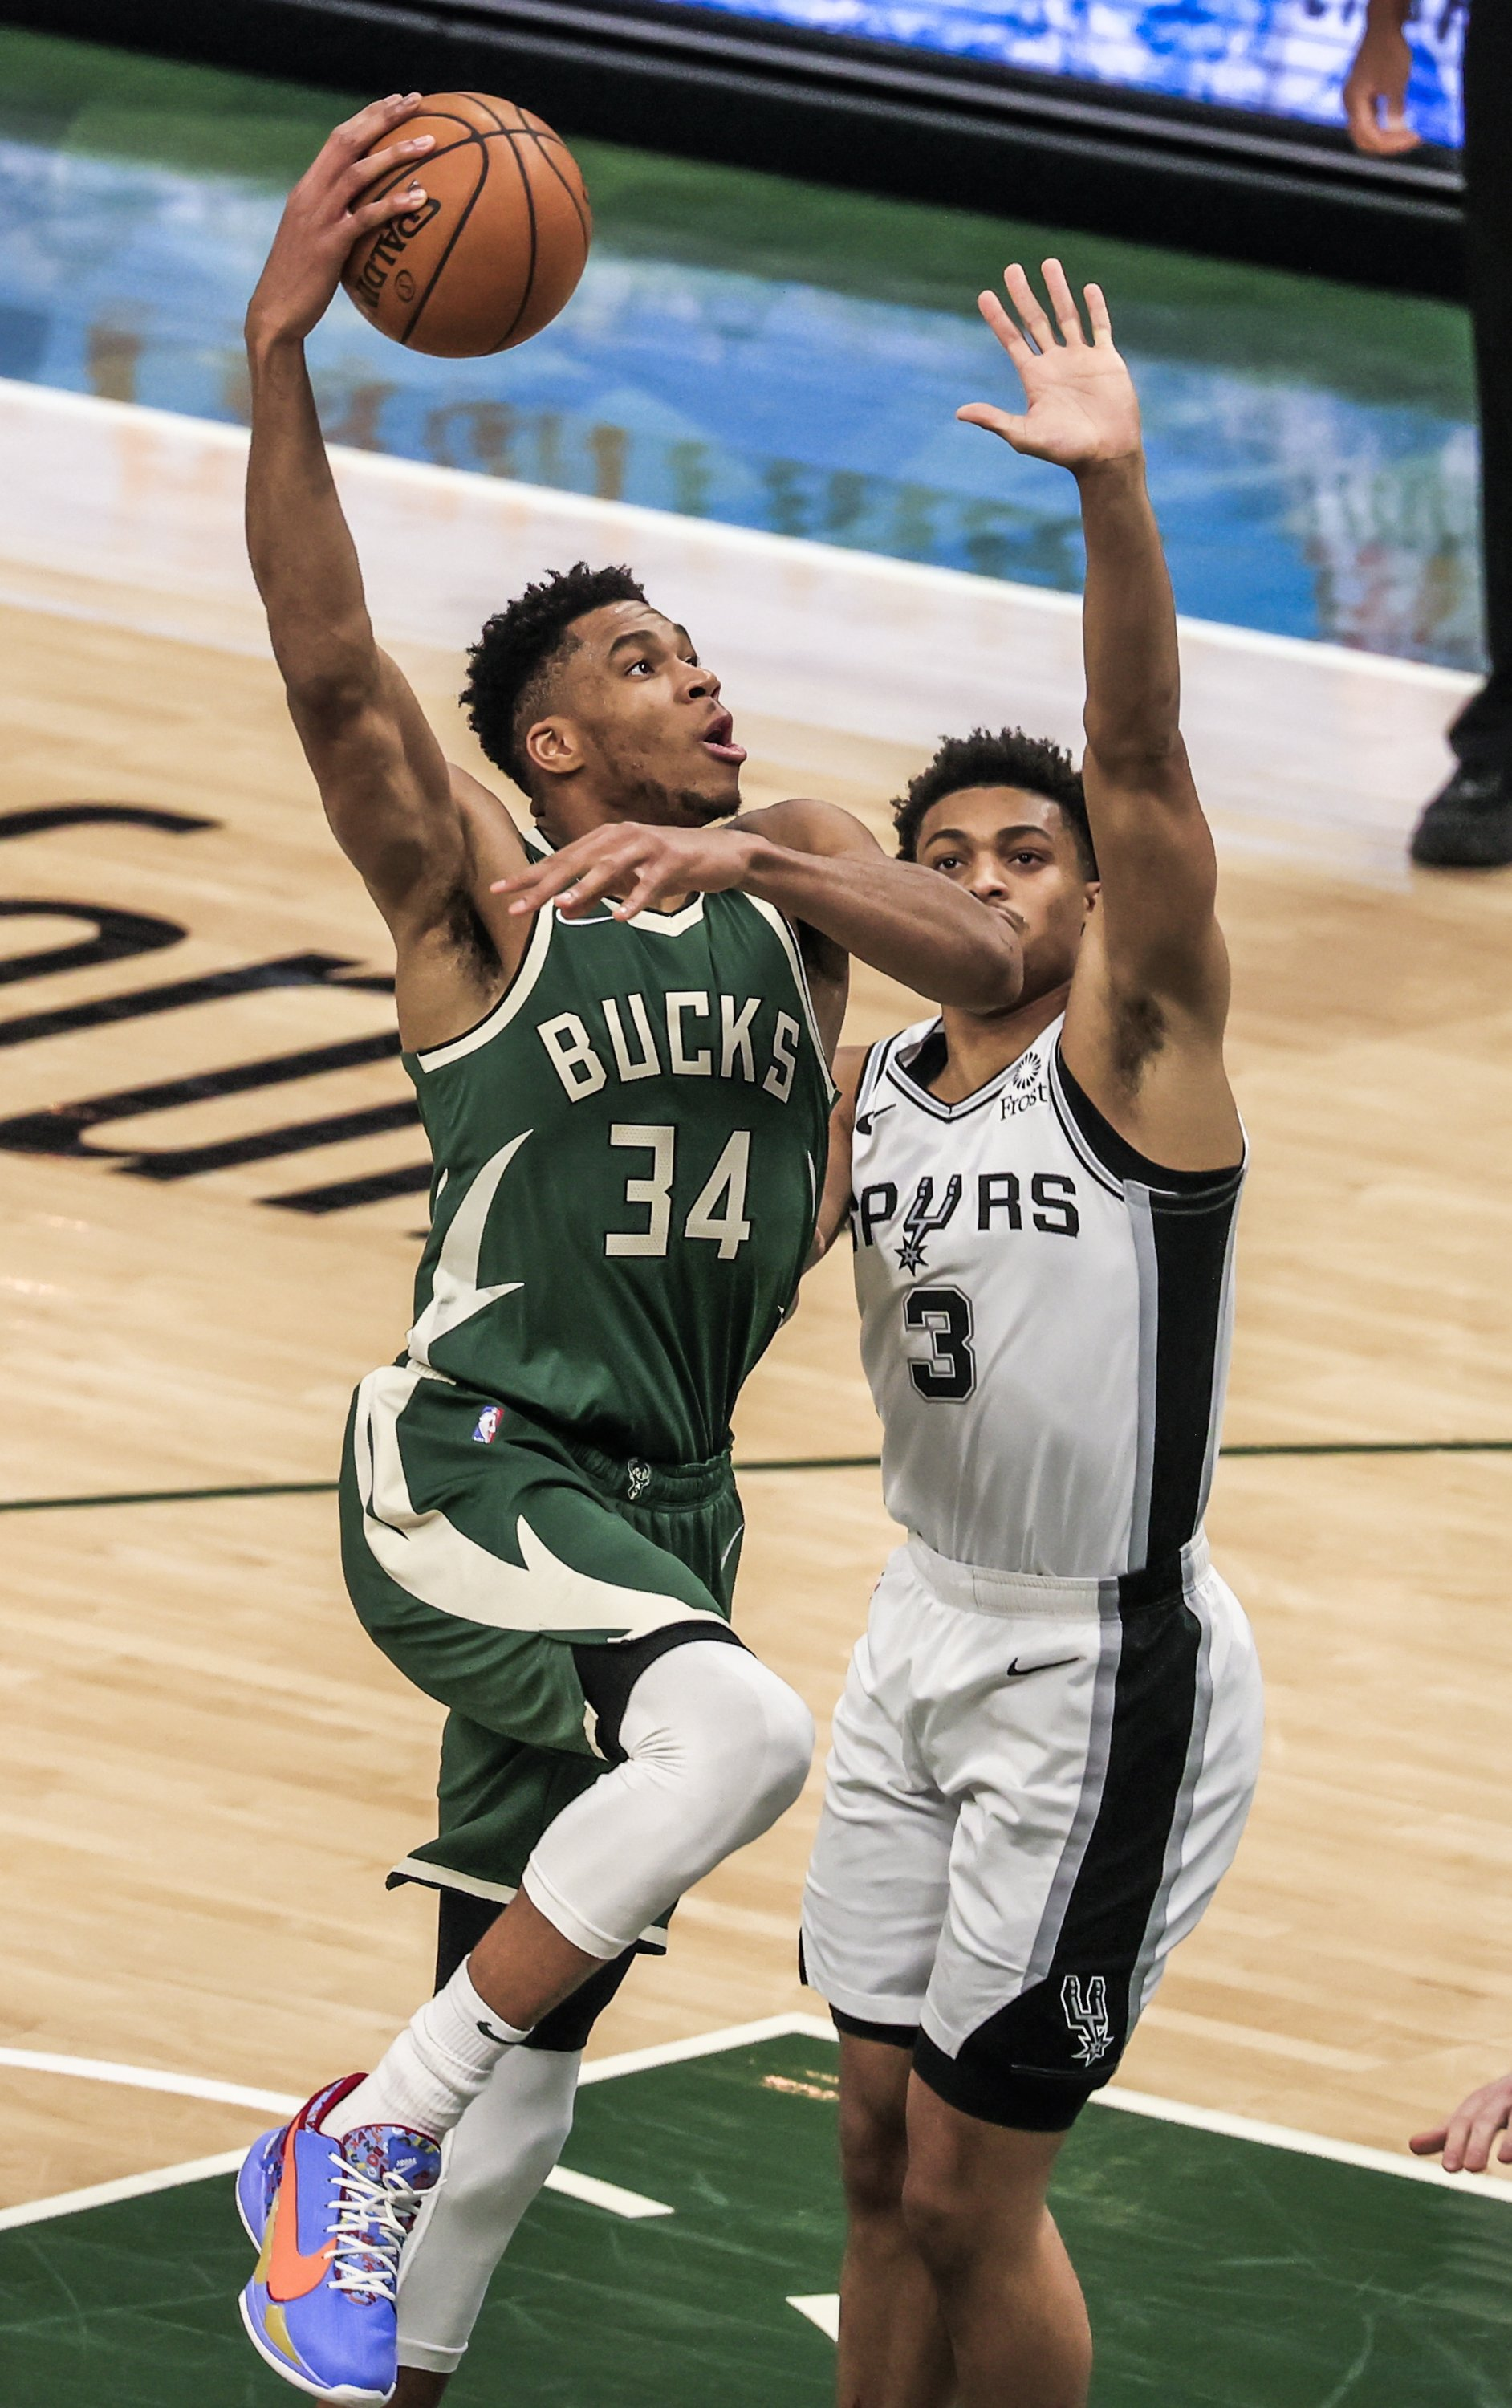 Milwaukee Bucks forward Giannis Antetokounmpo (L) shoots on San Antonio Spurs forward Keldon Johnson (R) during an NBA game at Fiserv Forum in Milwaukee, Wisconsin, March 20, 2021.  (EPA Photo)